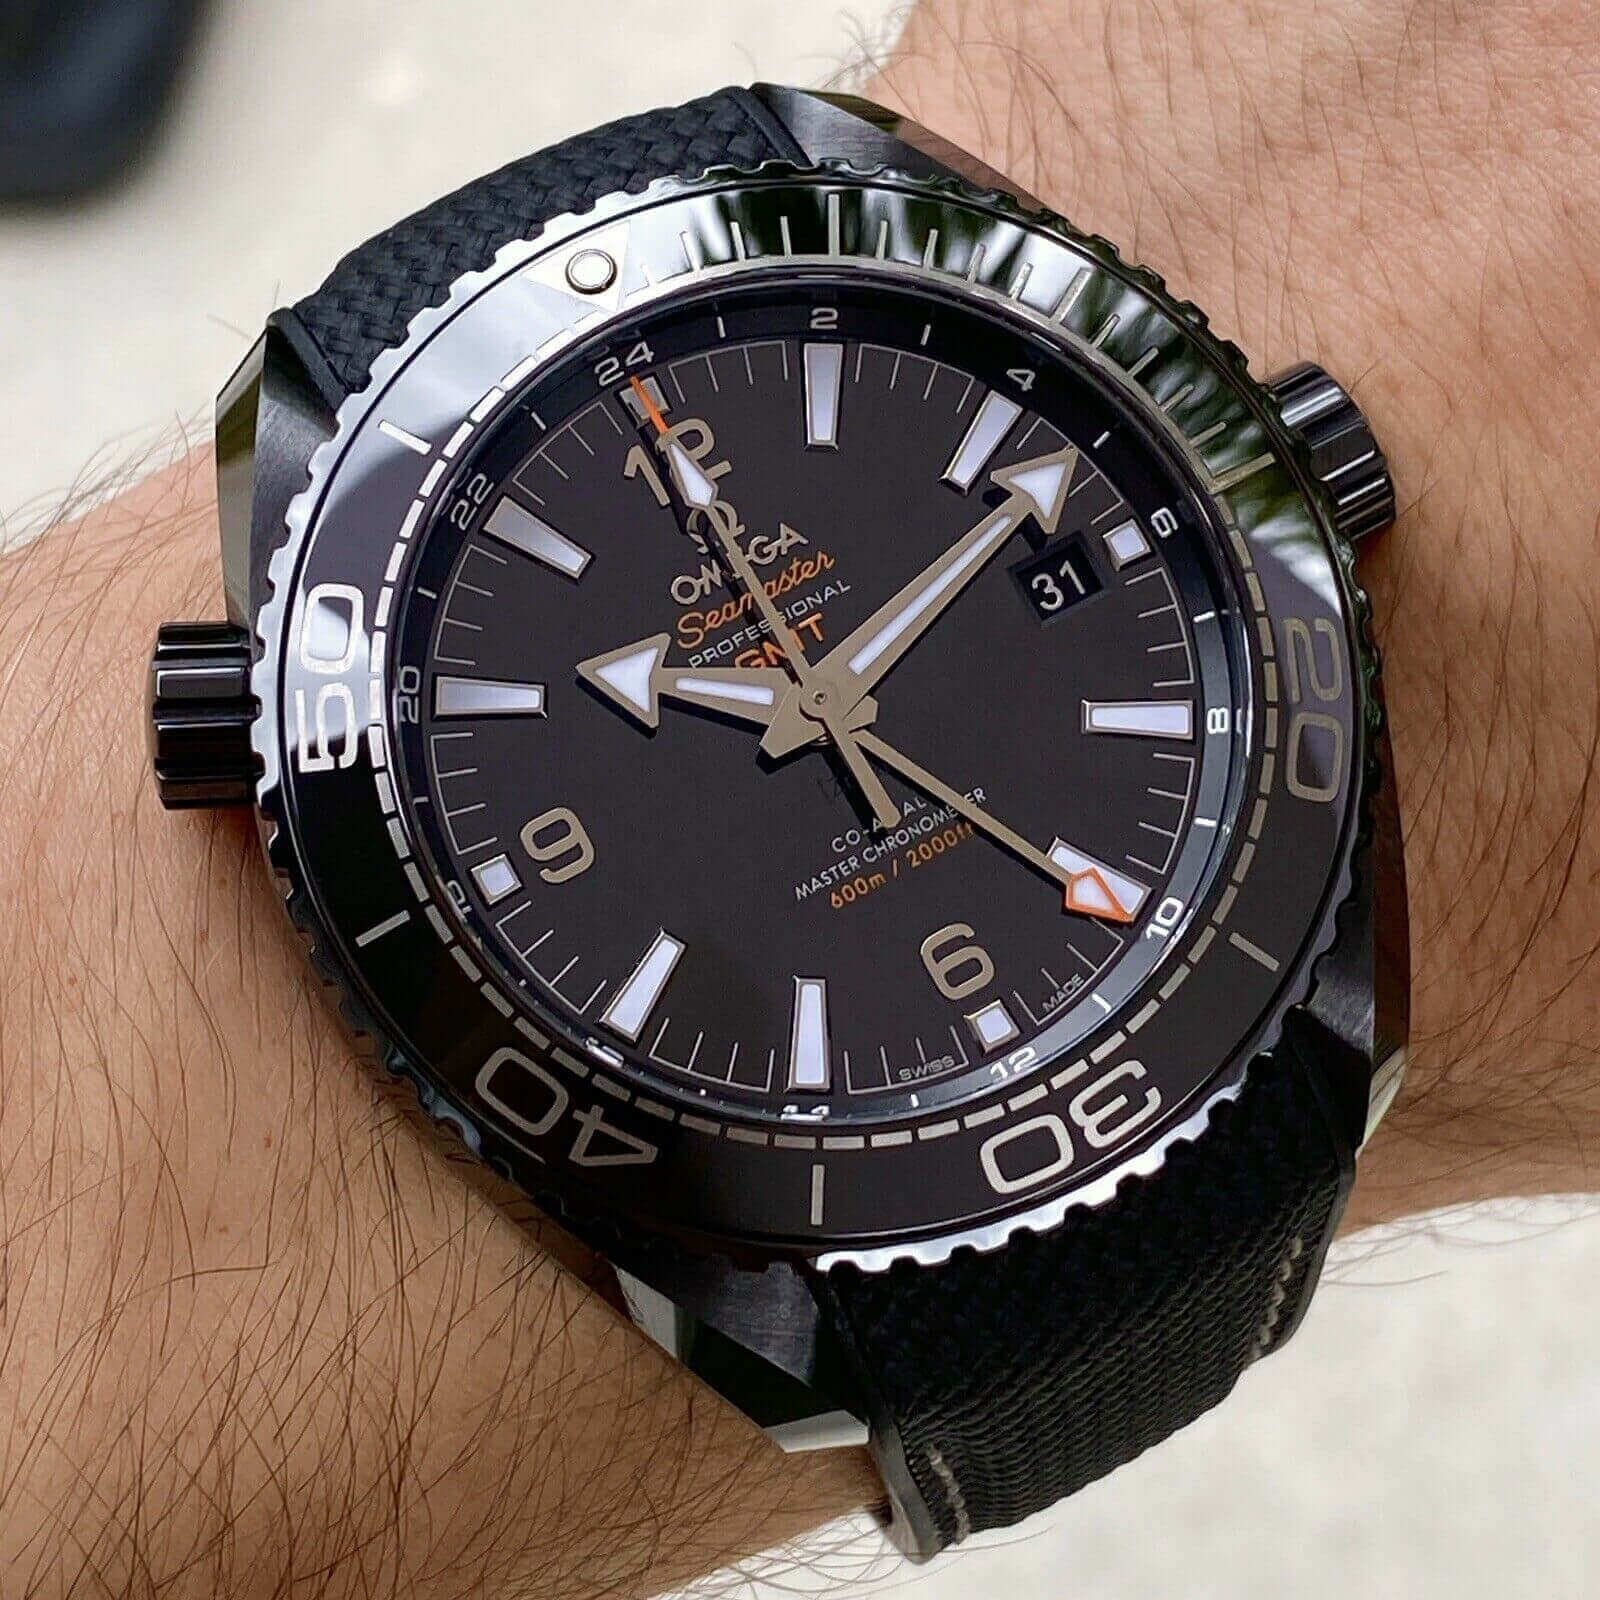 A black  Omega Seamaster Planet Ocean watch with a black face.